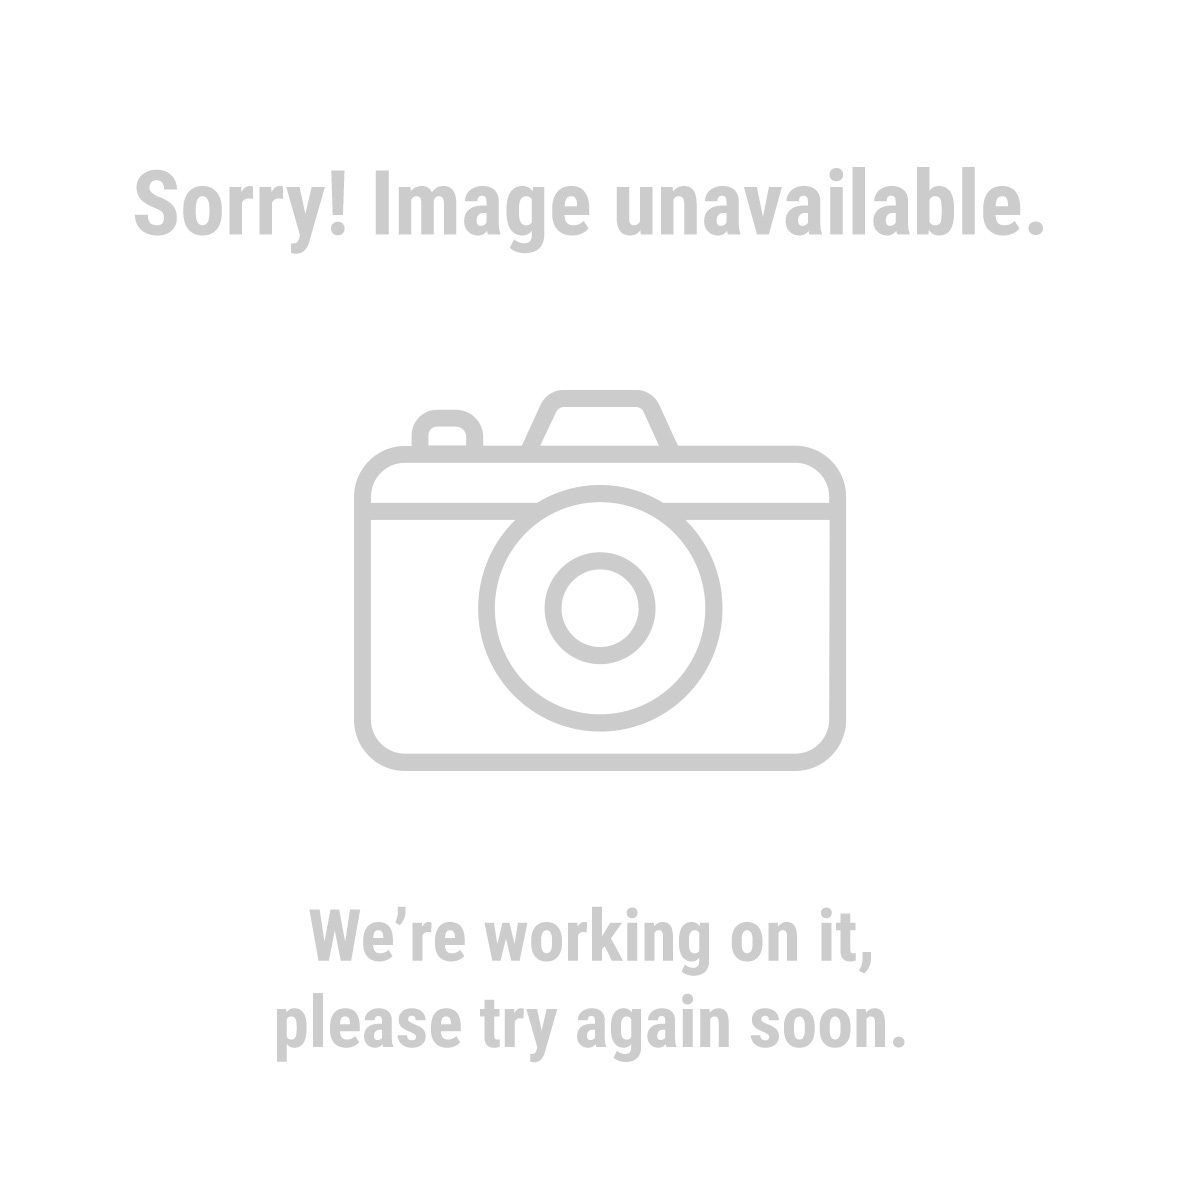 38778 200 Lb. Capacity Portable Work Stand